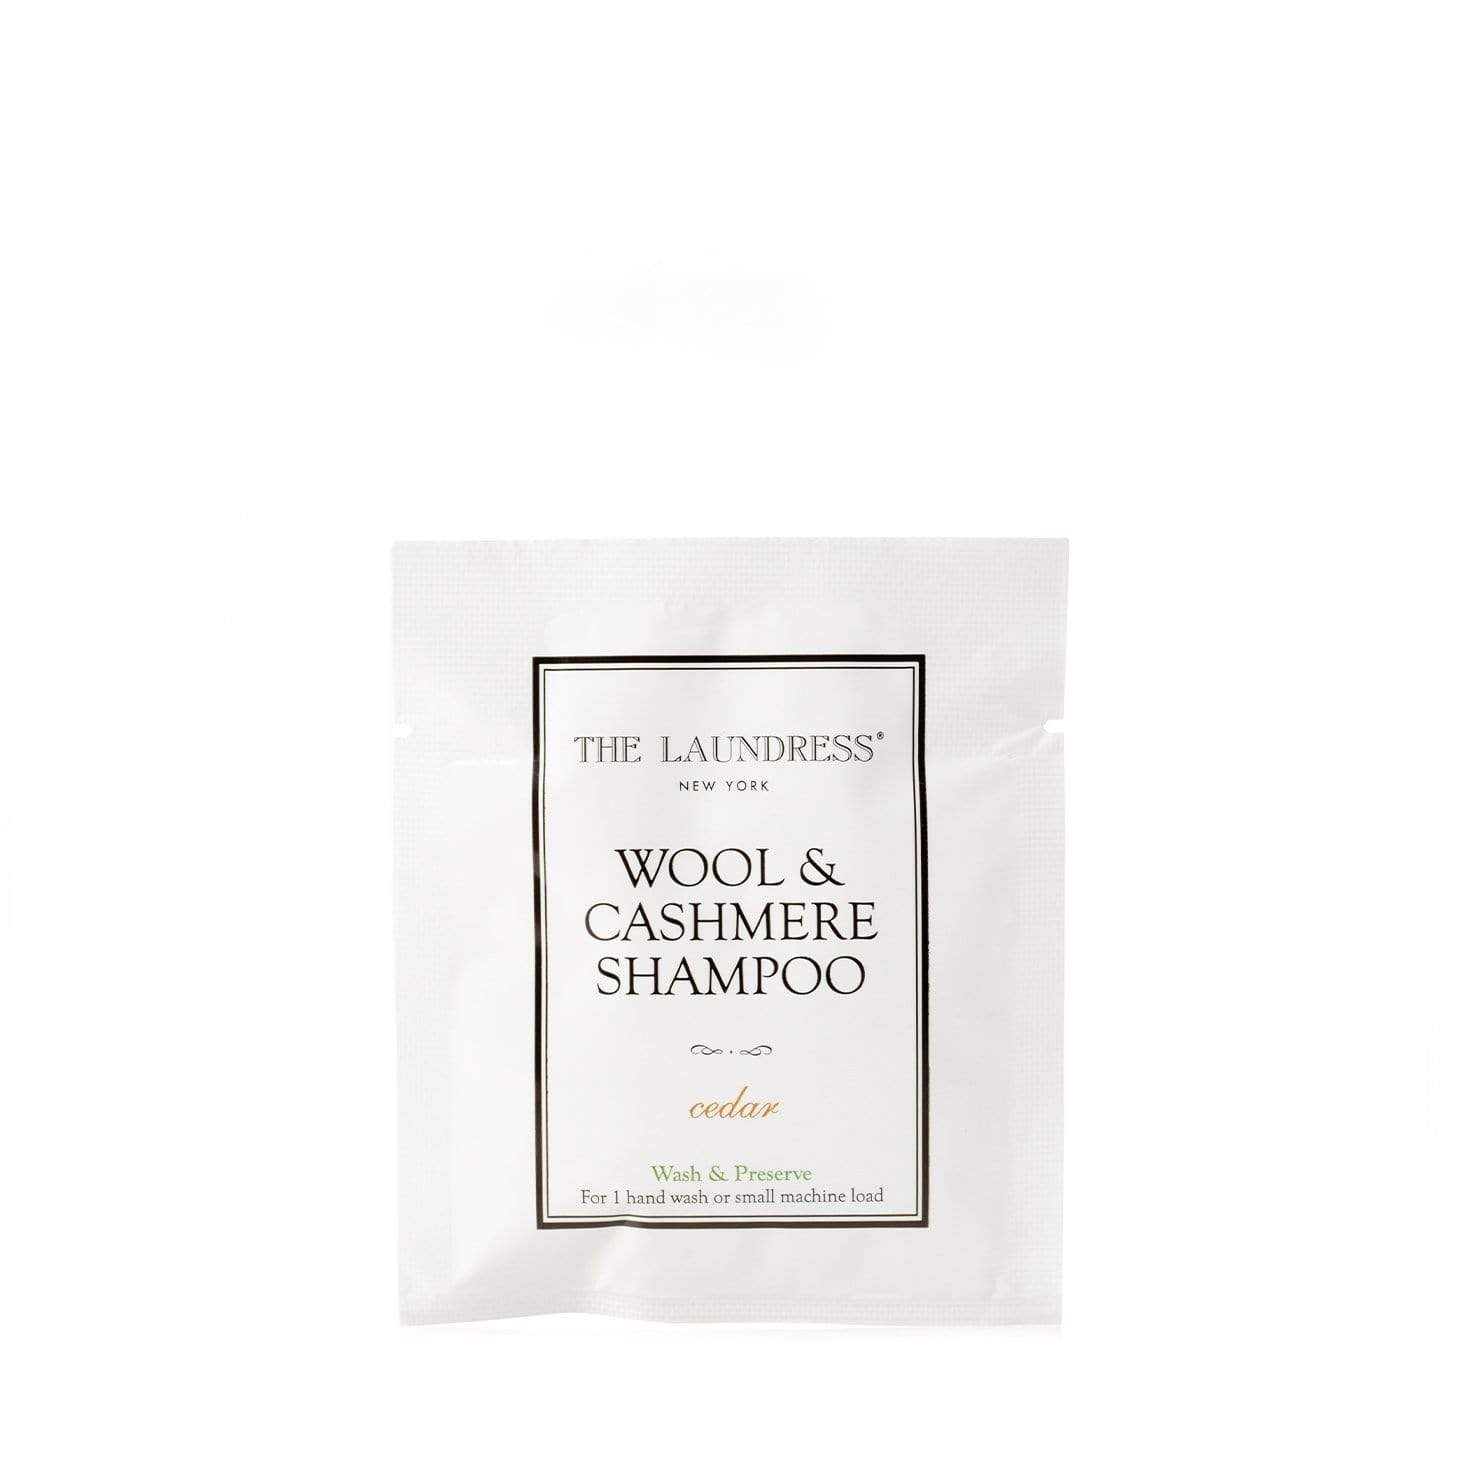 The Laundress Wool & Cashmere Shampoo Sachet - Cedar